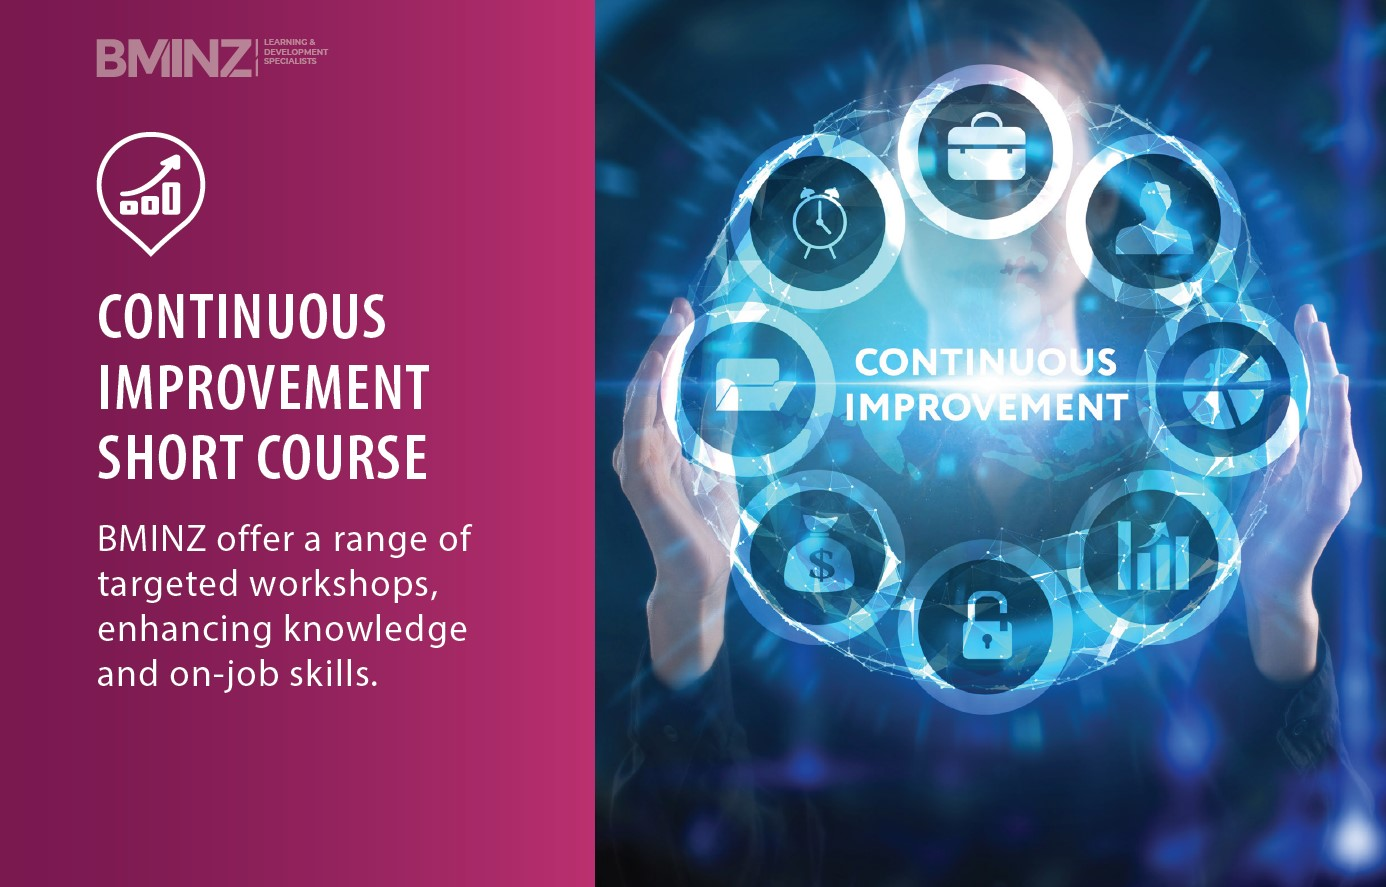 CONTINUOUS IMPROVEMENT SHORT COURSE: BMINZ offer a range of targeted workshops, enhancing knowledge and on-job skills.